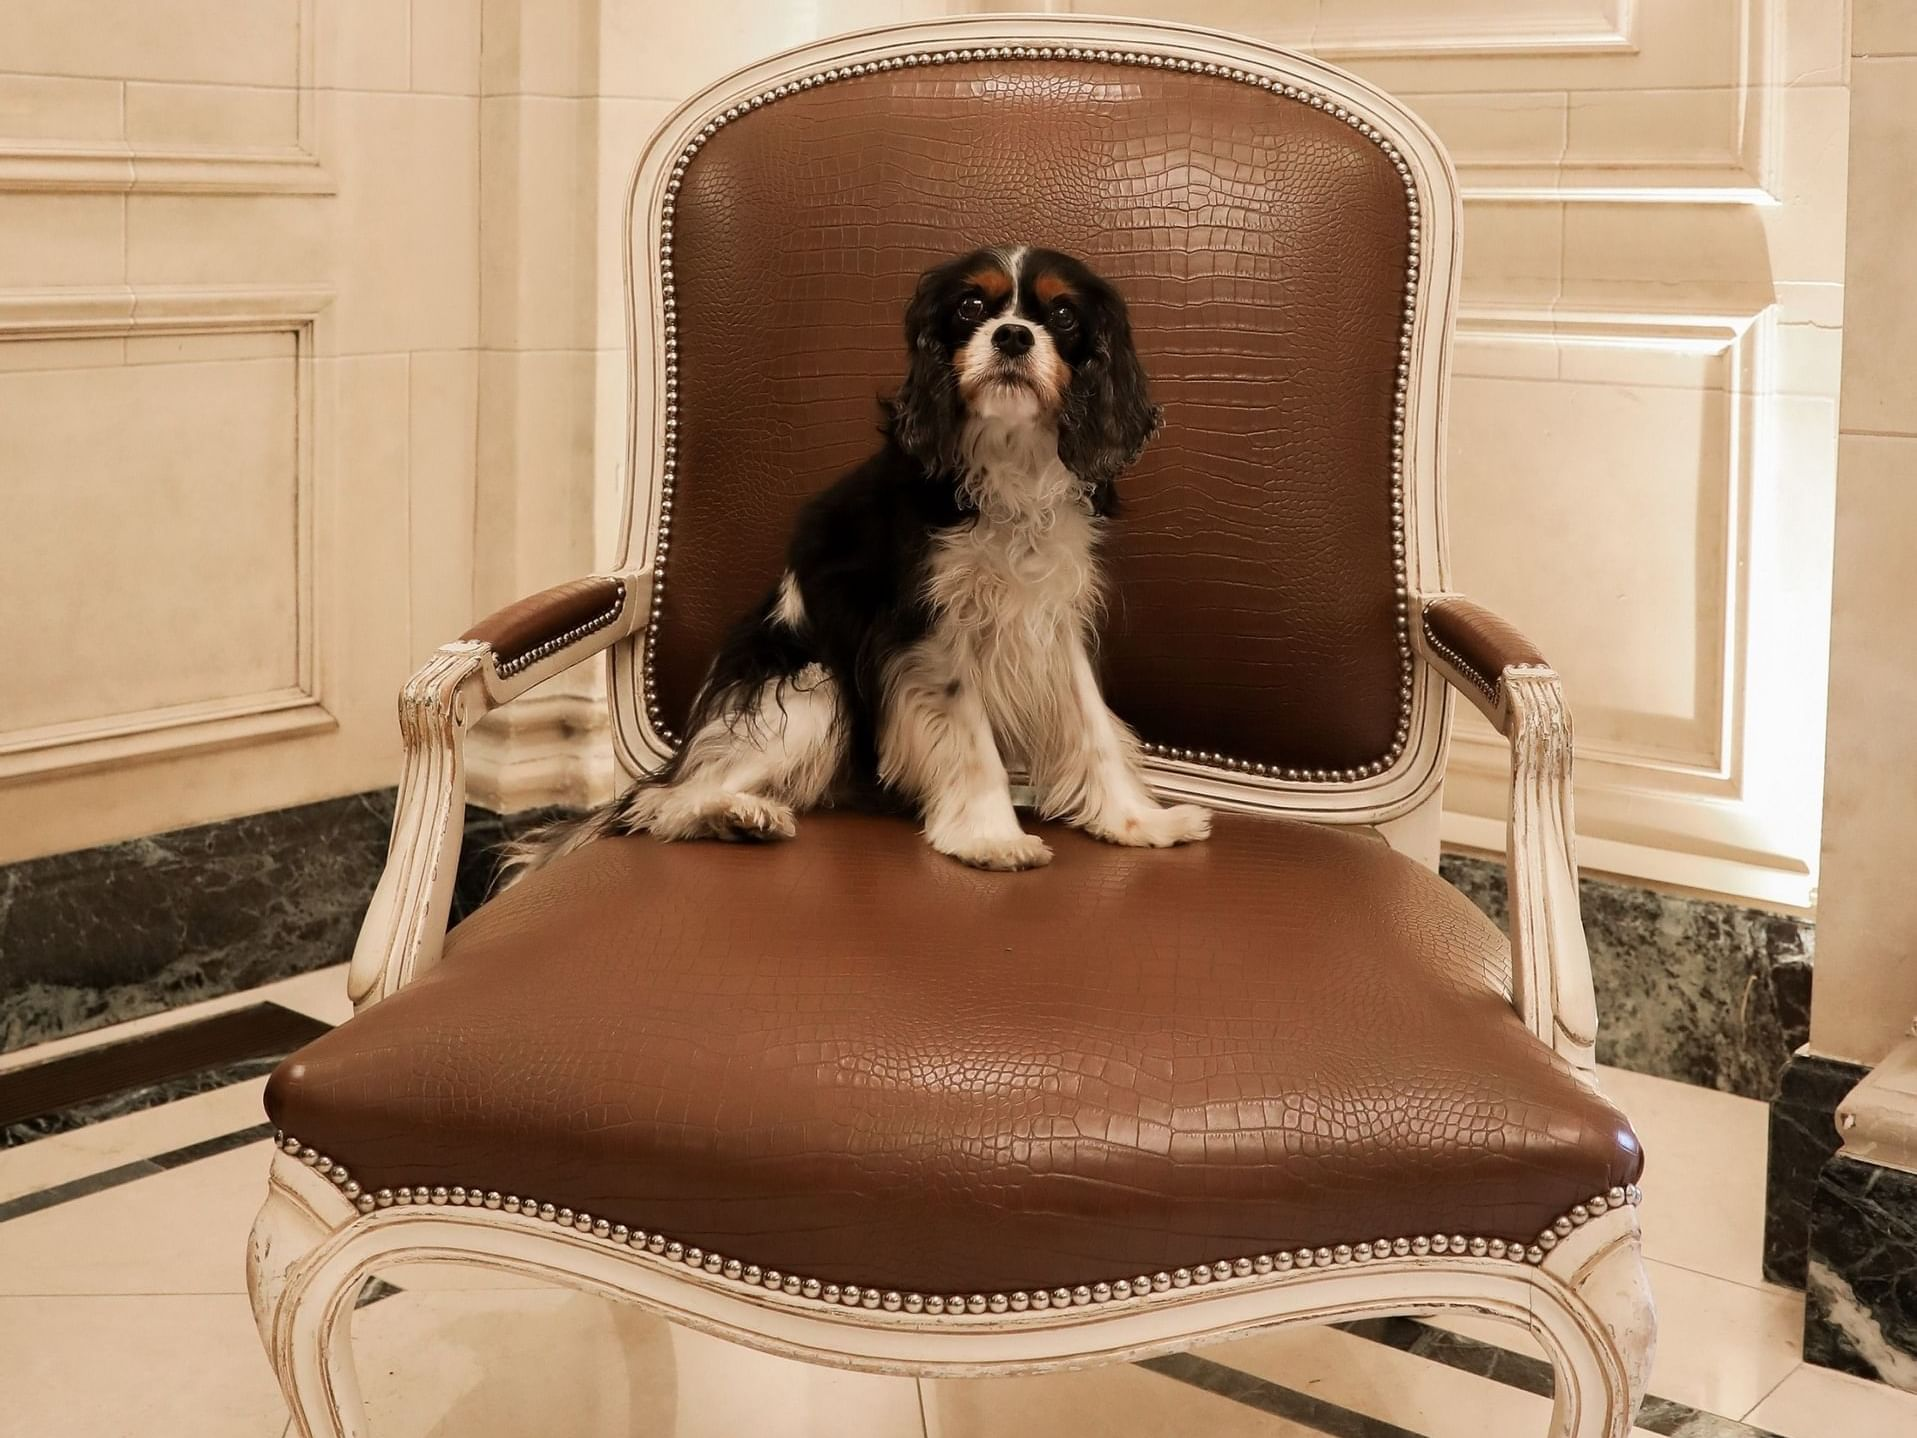 A black and white puppy sitting on a large chair.